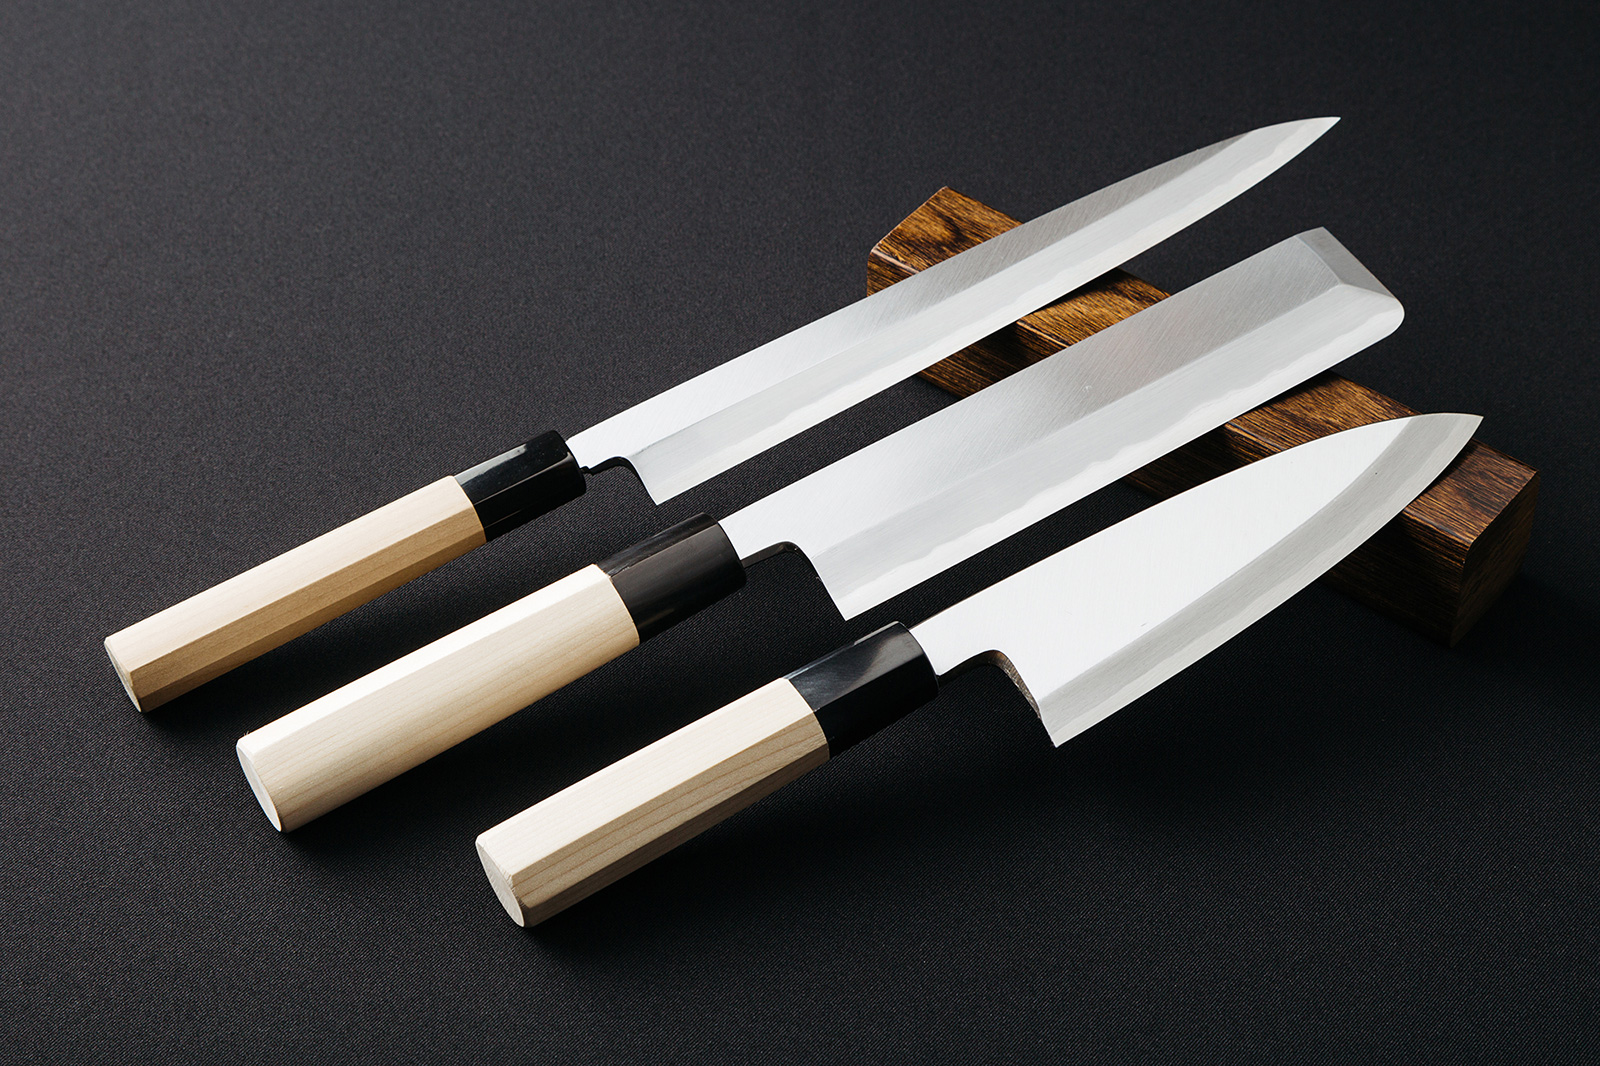 From The Left Knife Used For Sashimi A Vegetables And